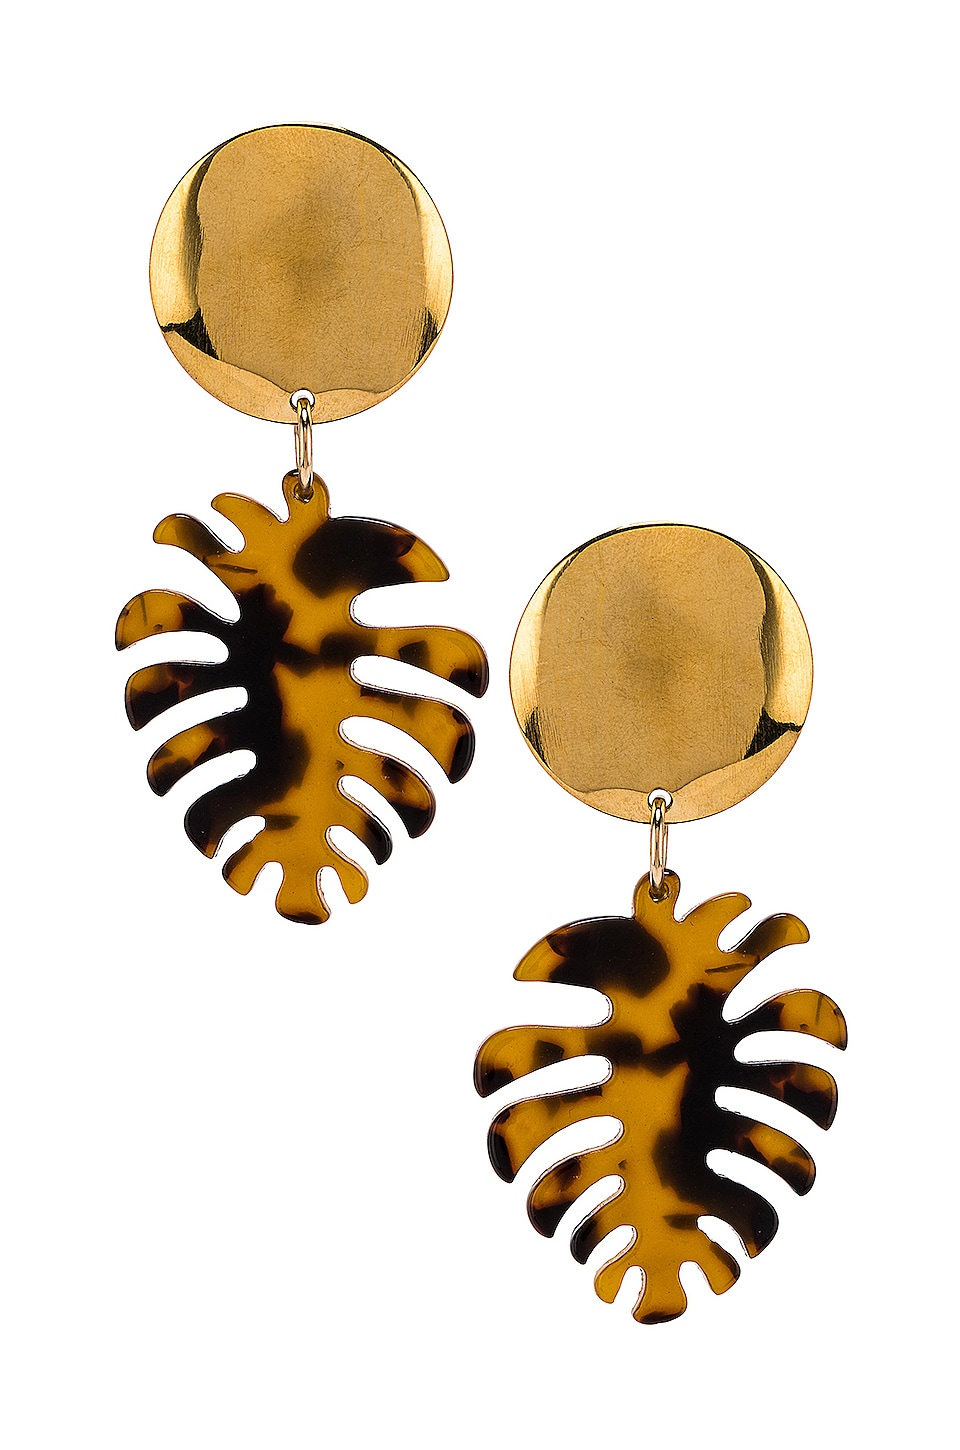 Paradigm Copa Cabana Earrings in Dark Tortoise